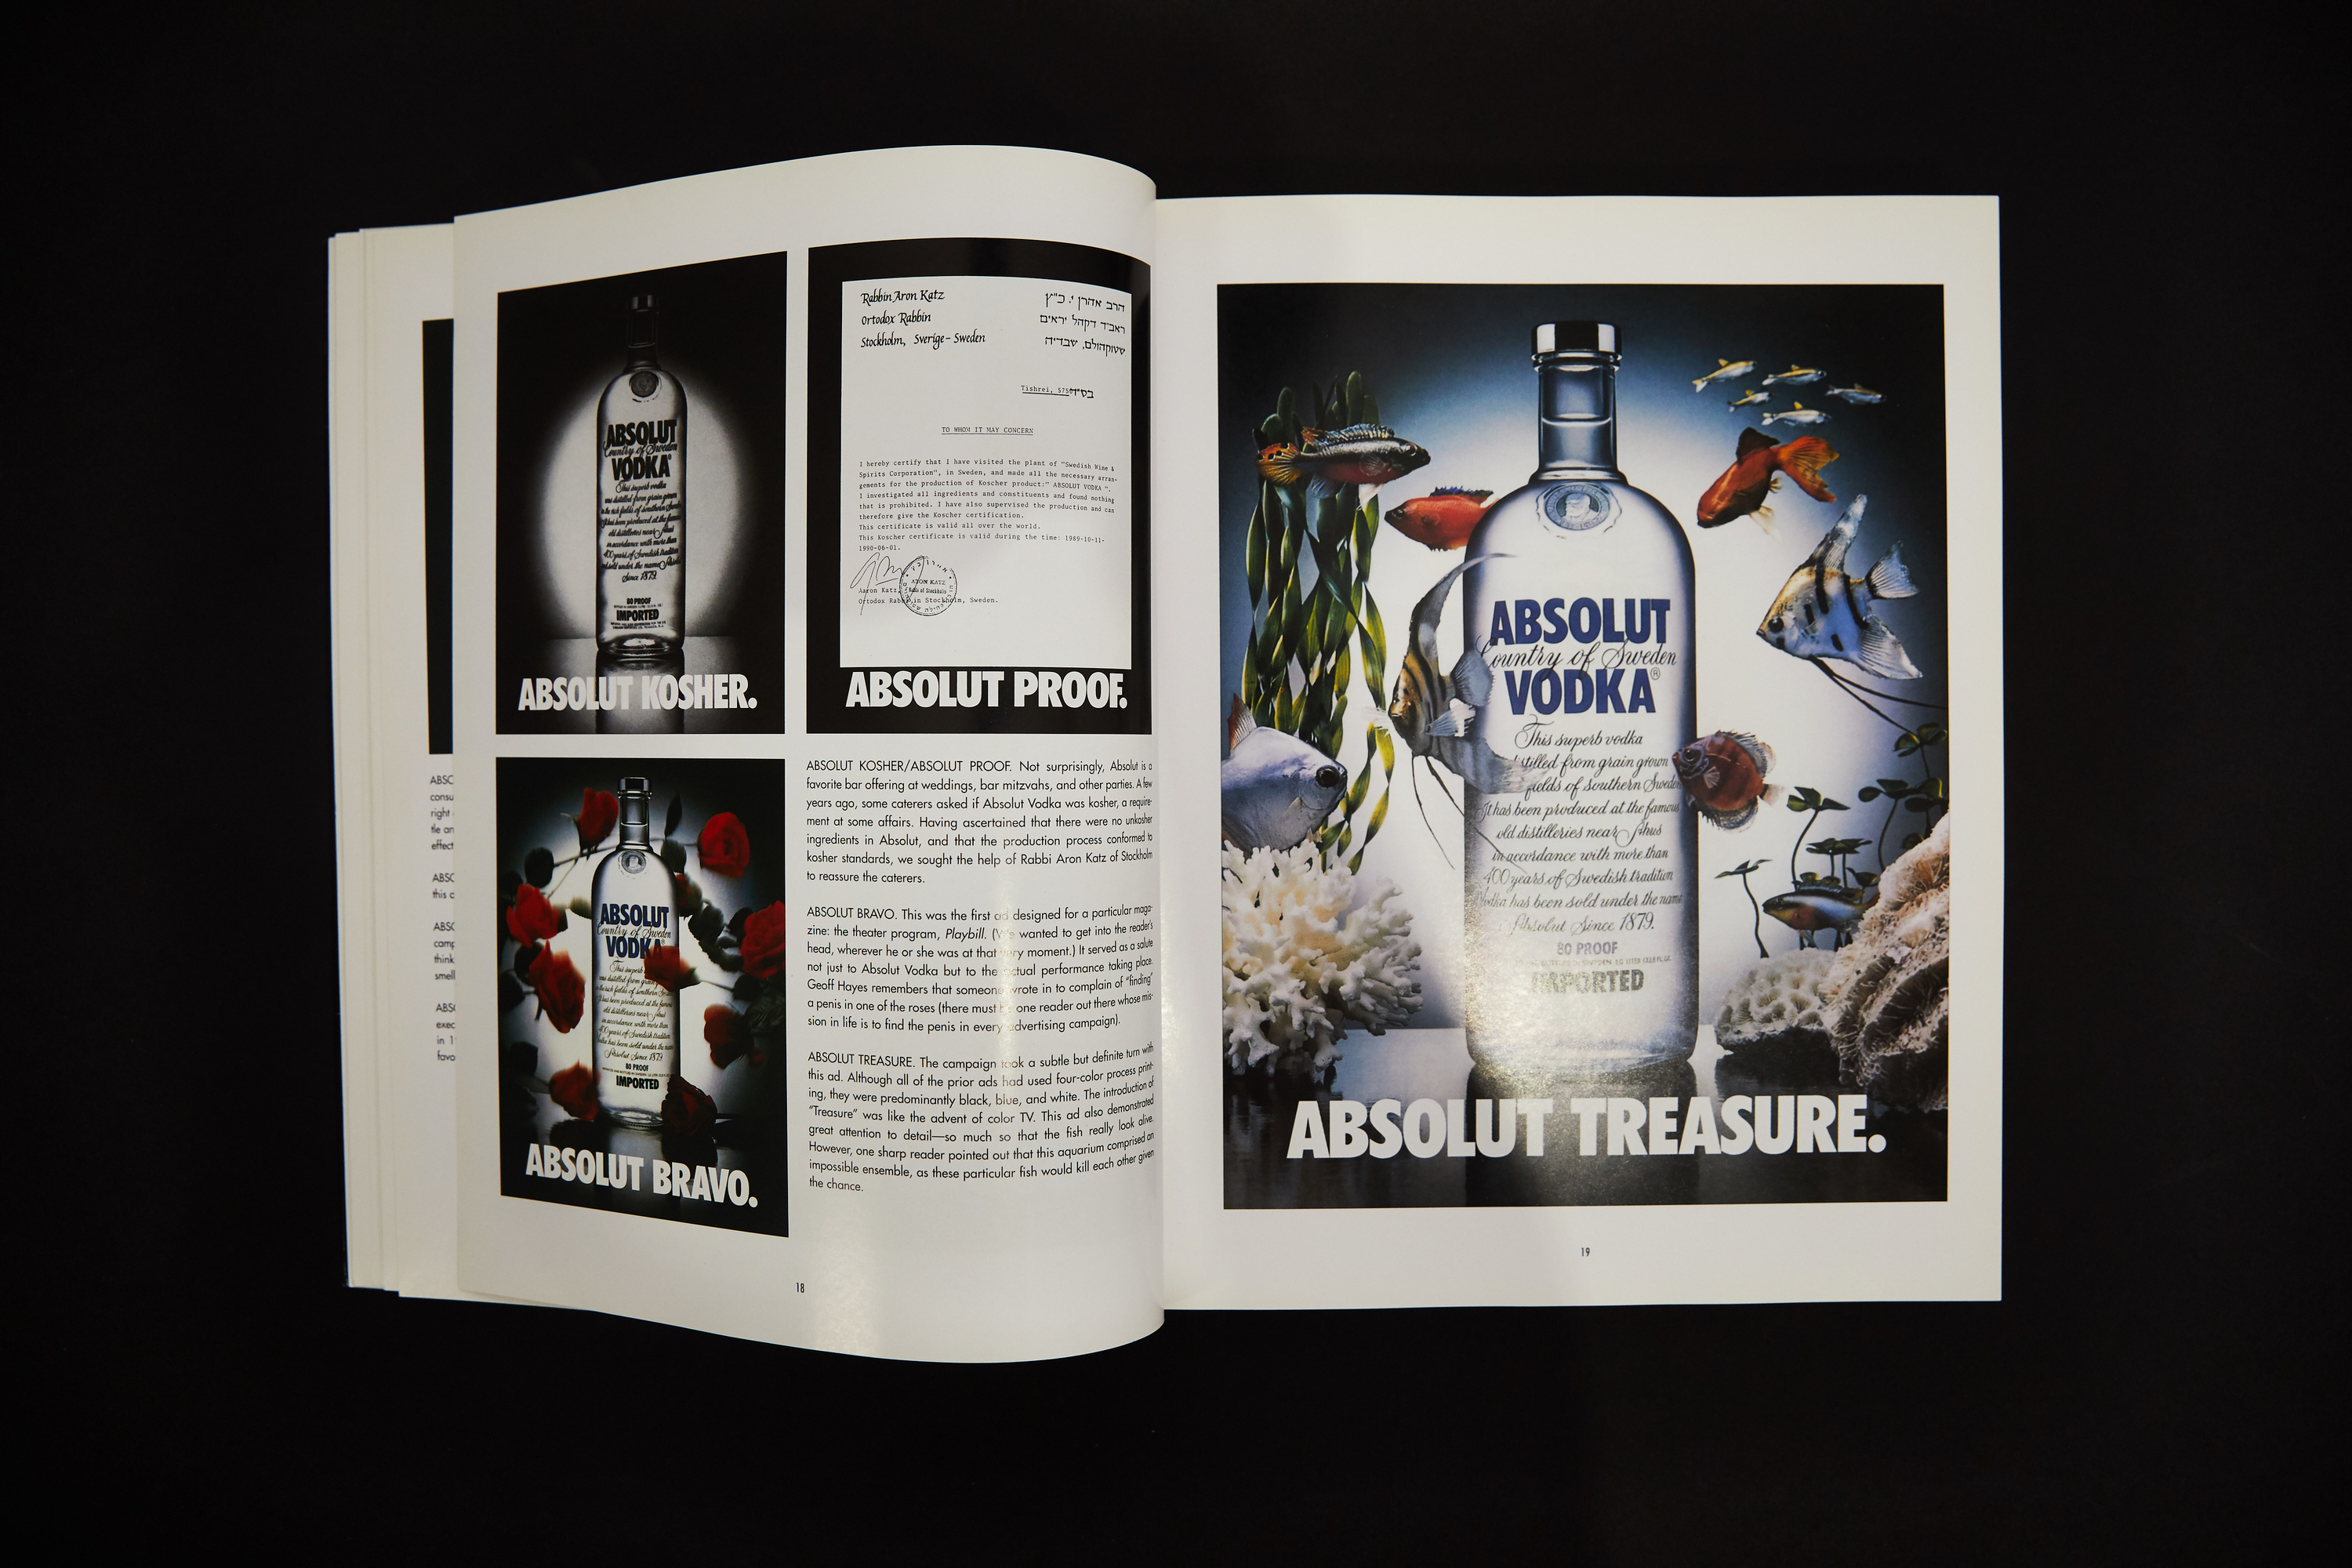 Absolut marketer Michel Roux leaves a legacy of bottles, branding